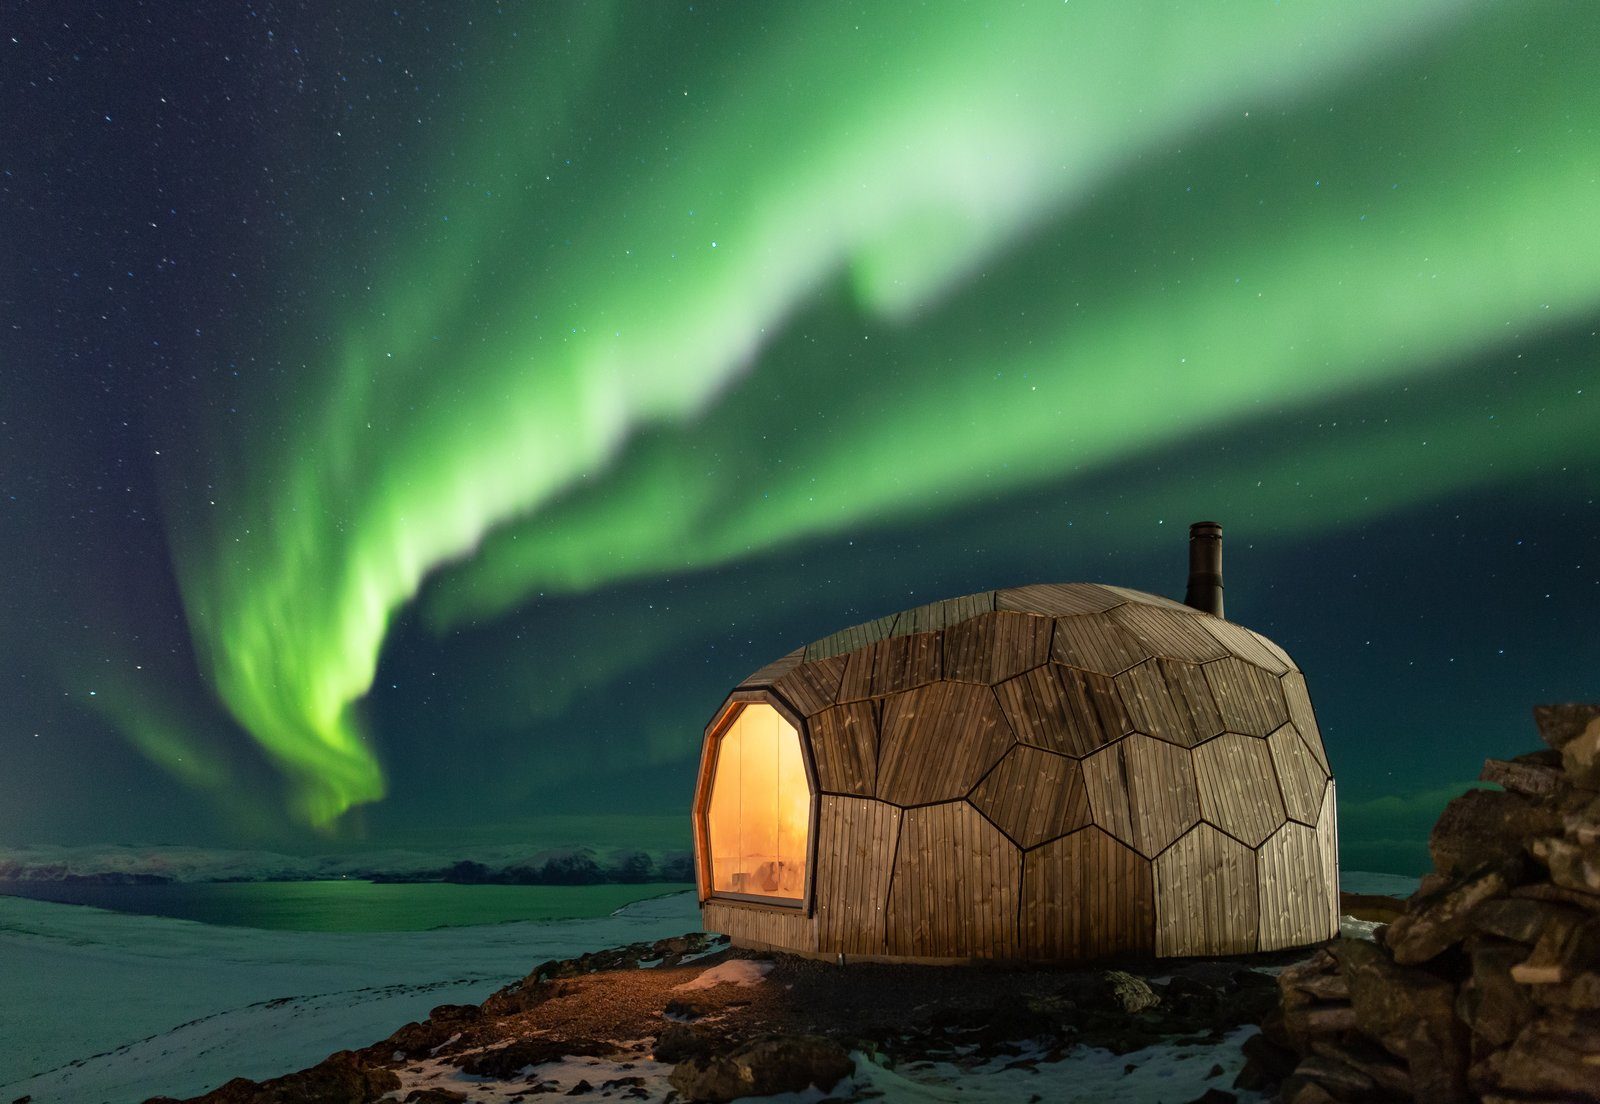 This Egg-Shaped Cabin Provides Shelter for Arctic Circle Travelers